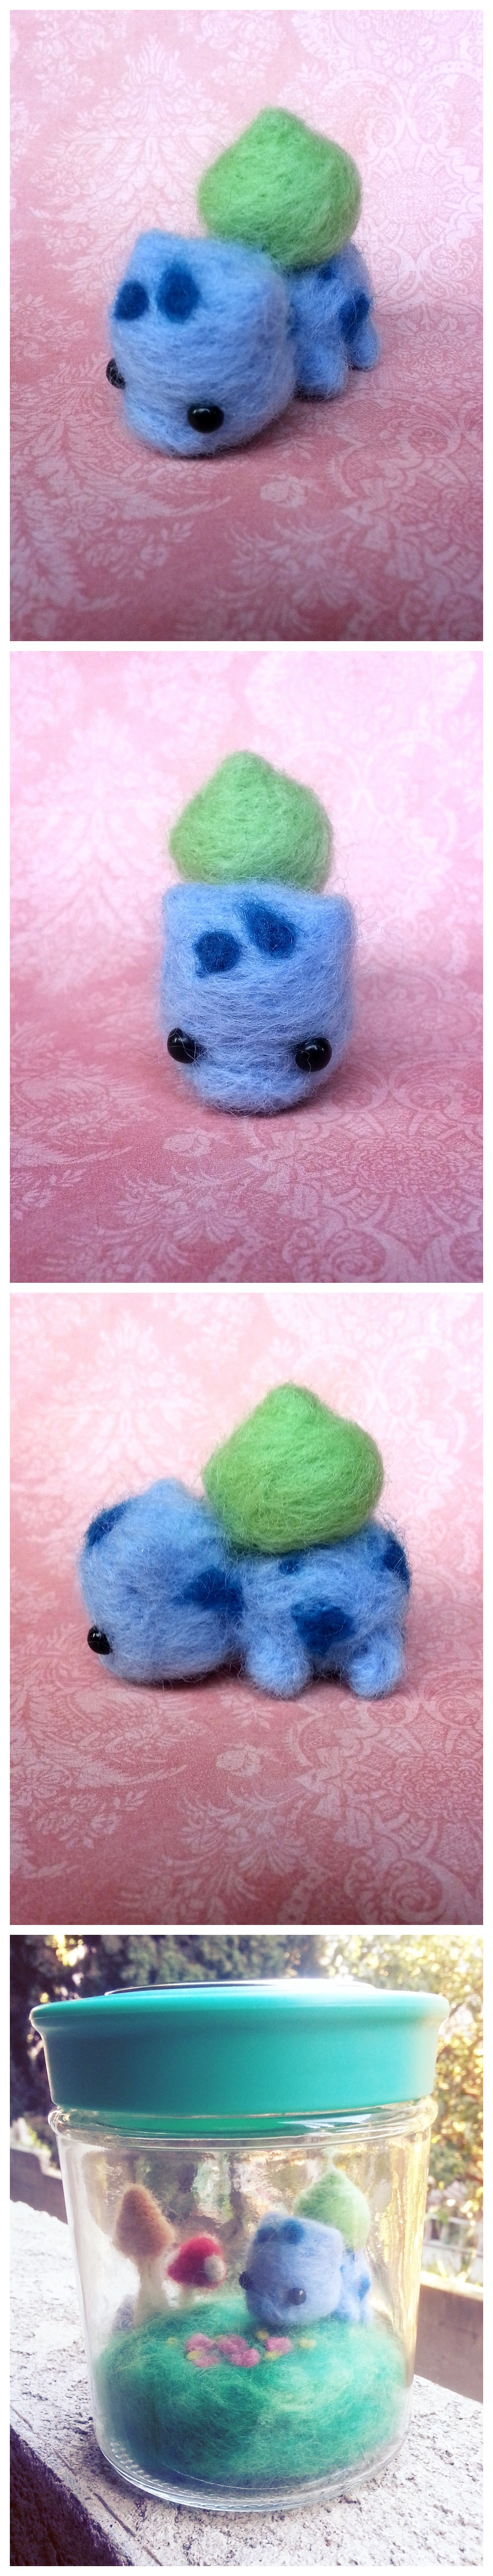 A needle felted Bulbasaur I made for my boyfriend. It's his favorite Pokemon.